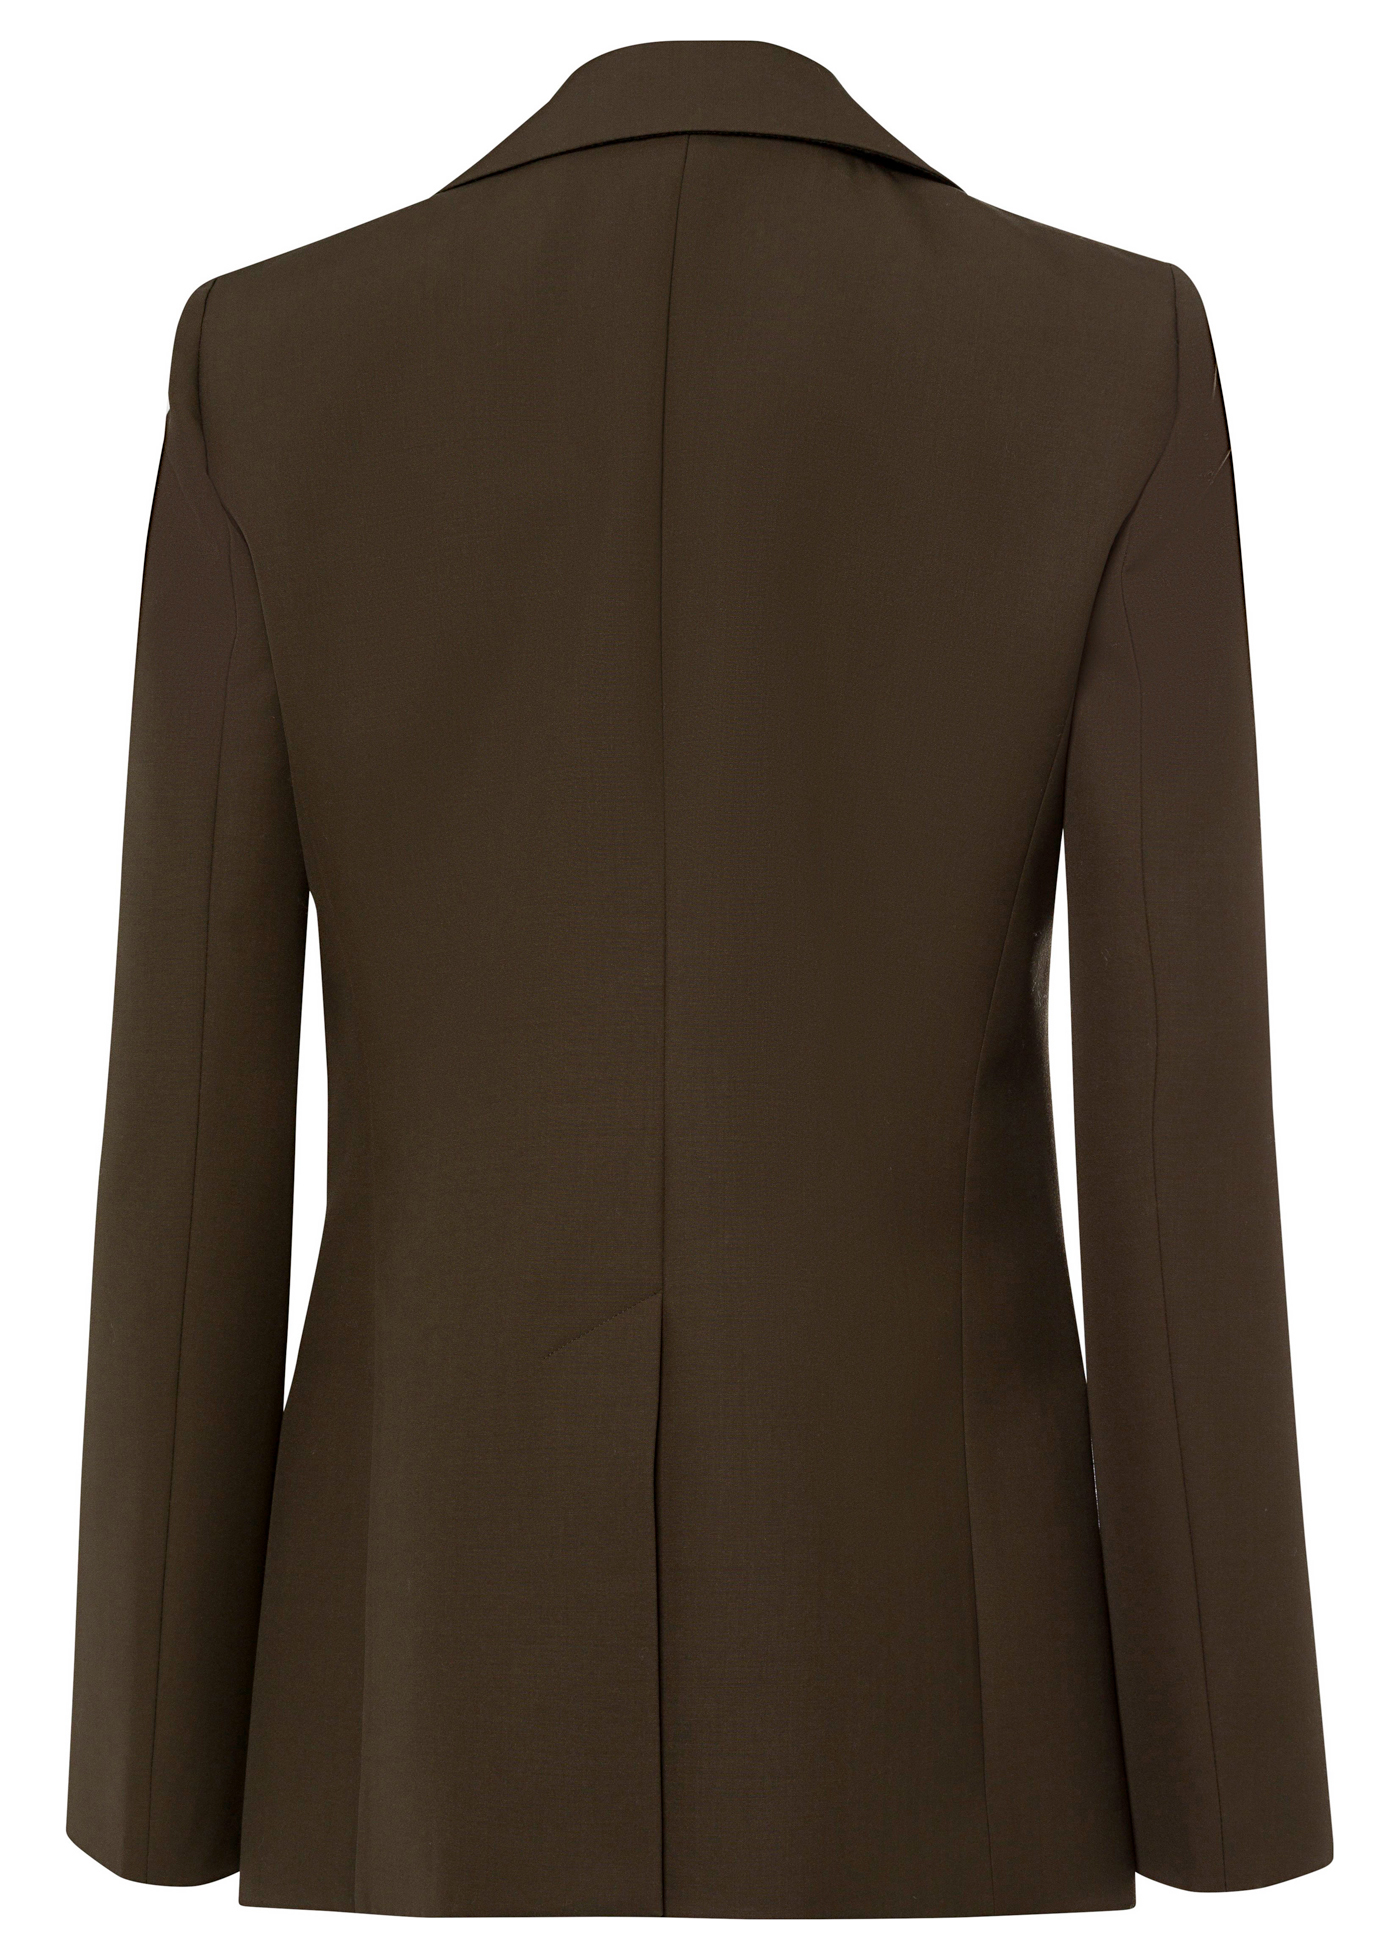 TAILORED JACKET W/ DRAPPED COLLAR image number 1